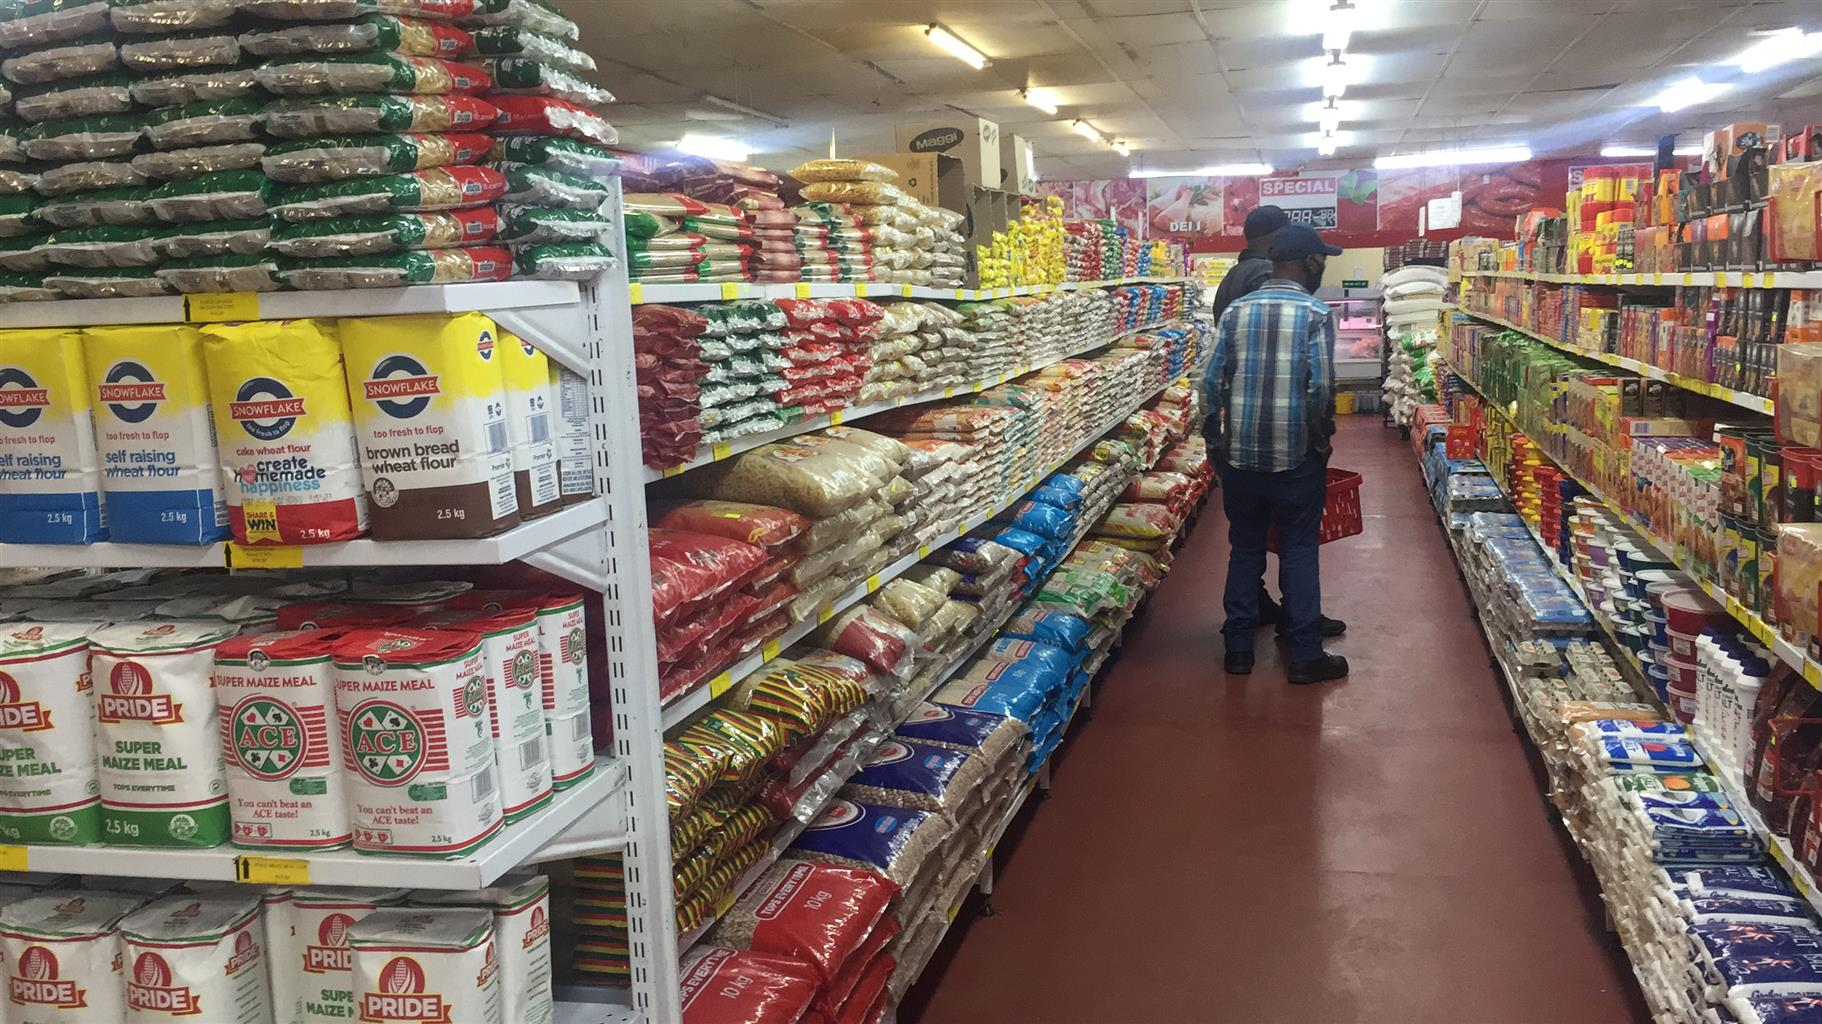 Ogies Meat & Chicken for sale